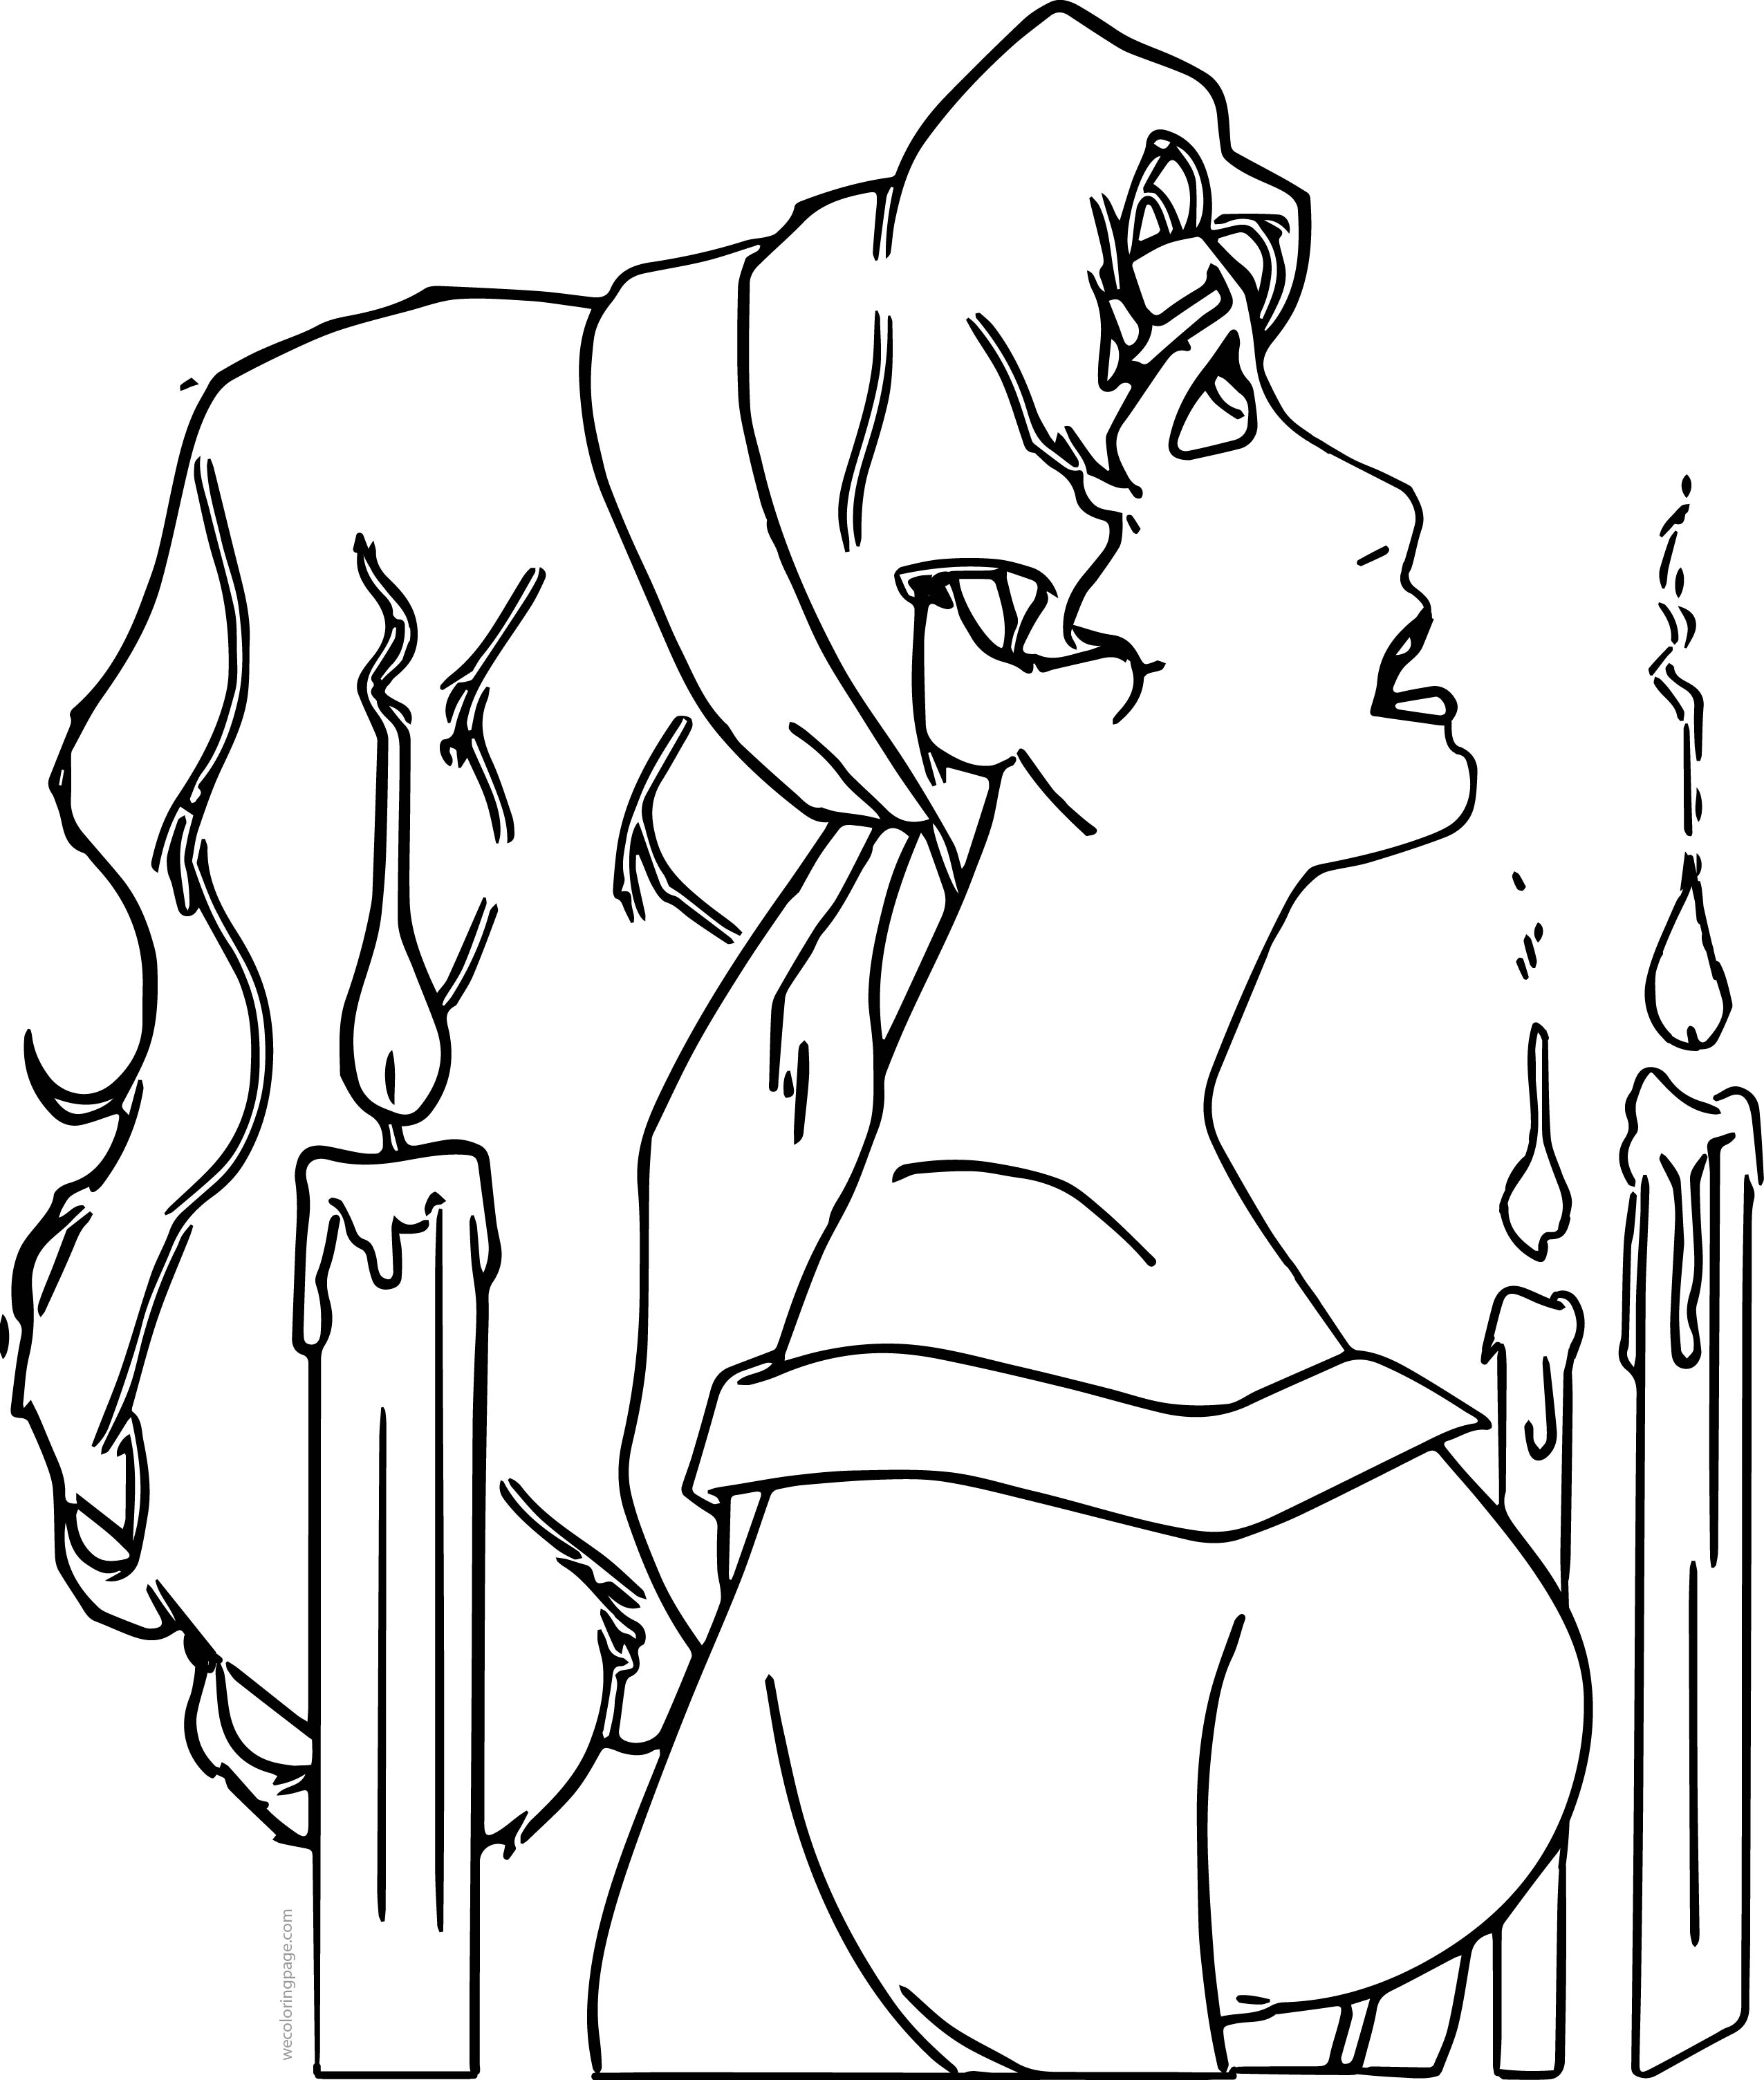 The Hunchback of Notre Dame Candles Girl Prayer Cartoon Coloring Page